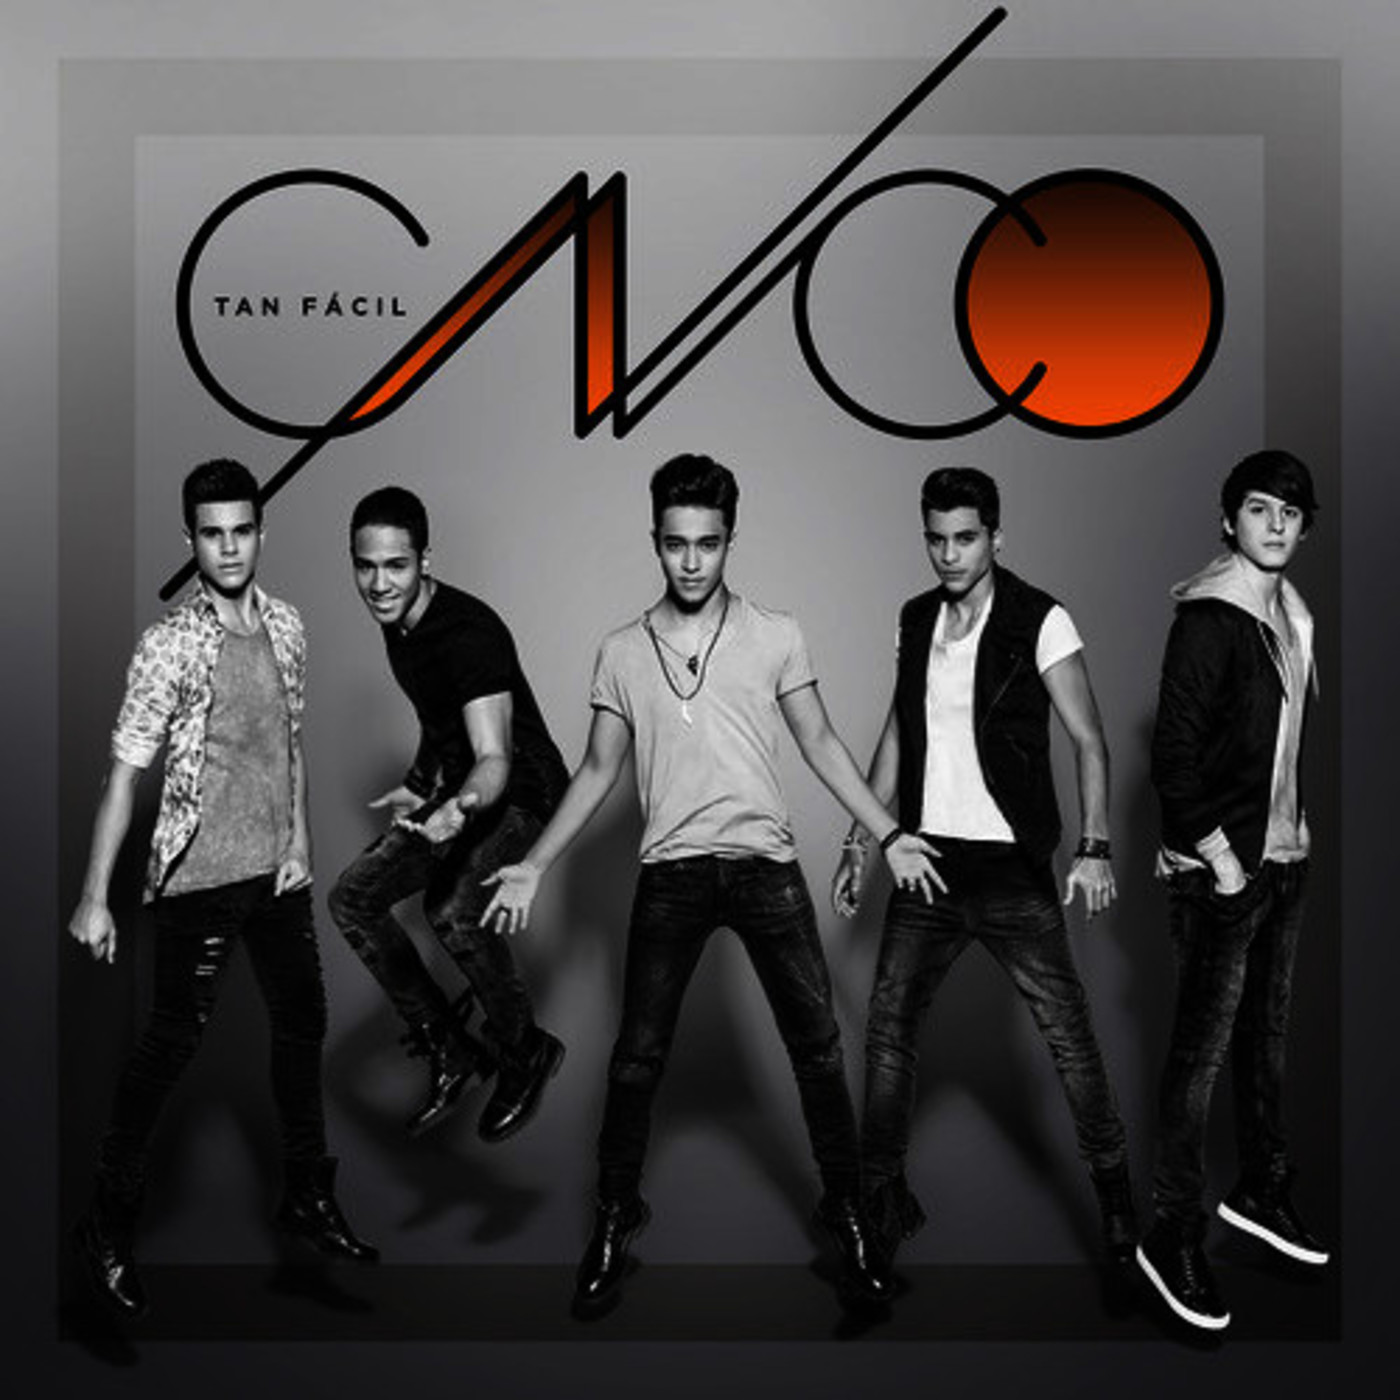 CNCO Ft. Wisin - Tan Facil (Official Remix)